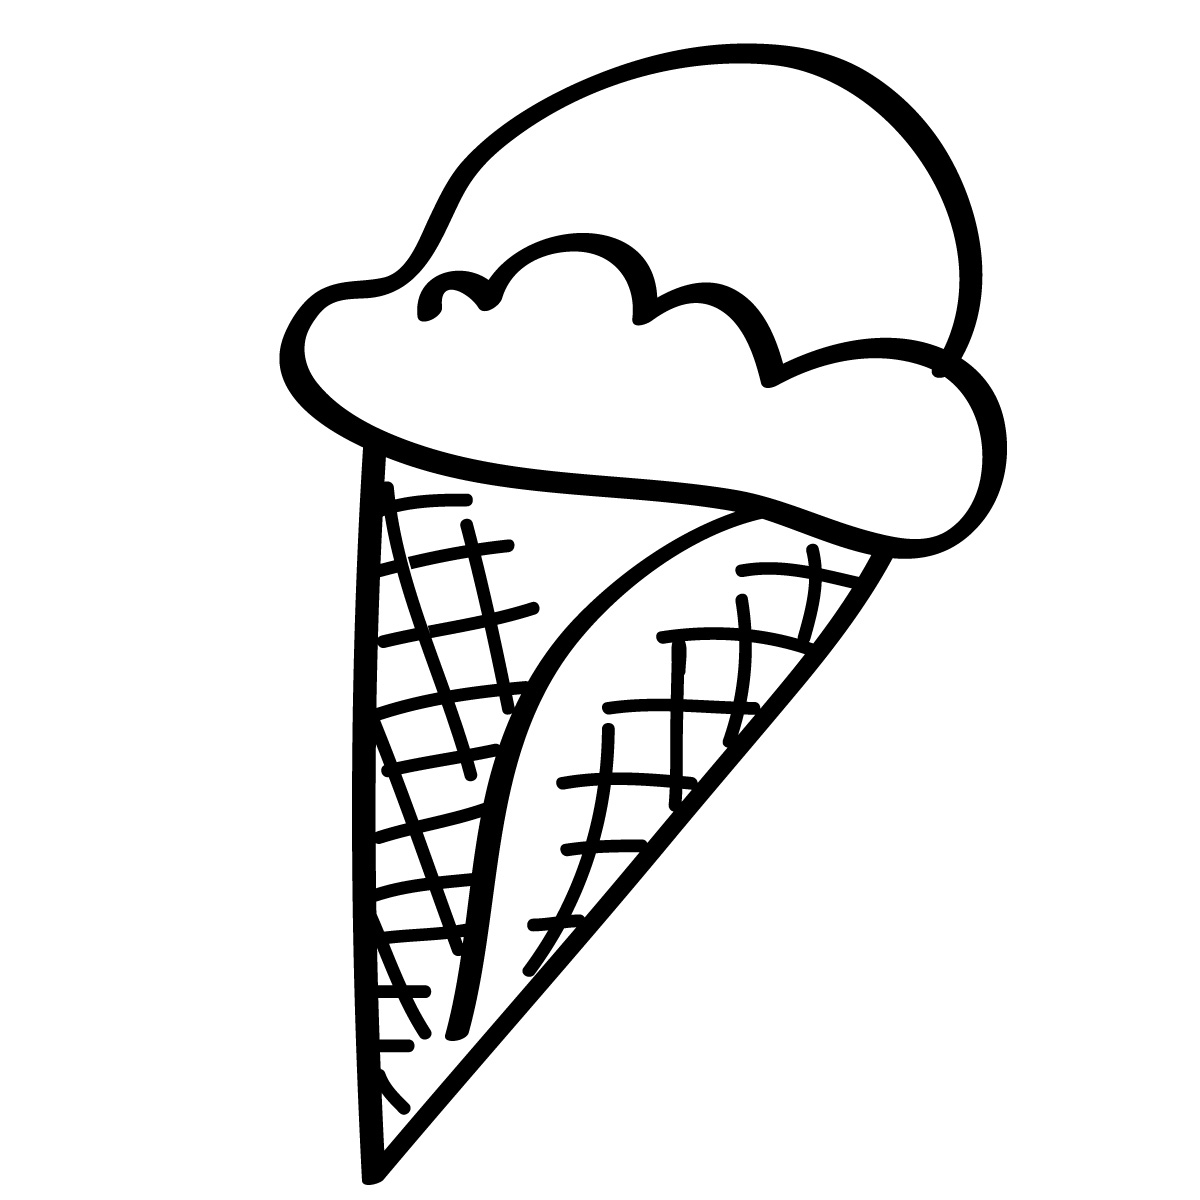 Ice cream black and white ice cream clipart black and white free